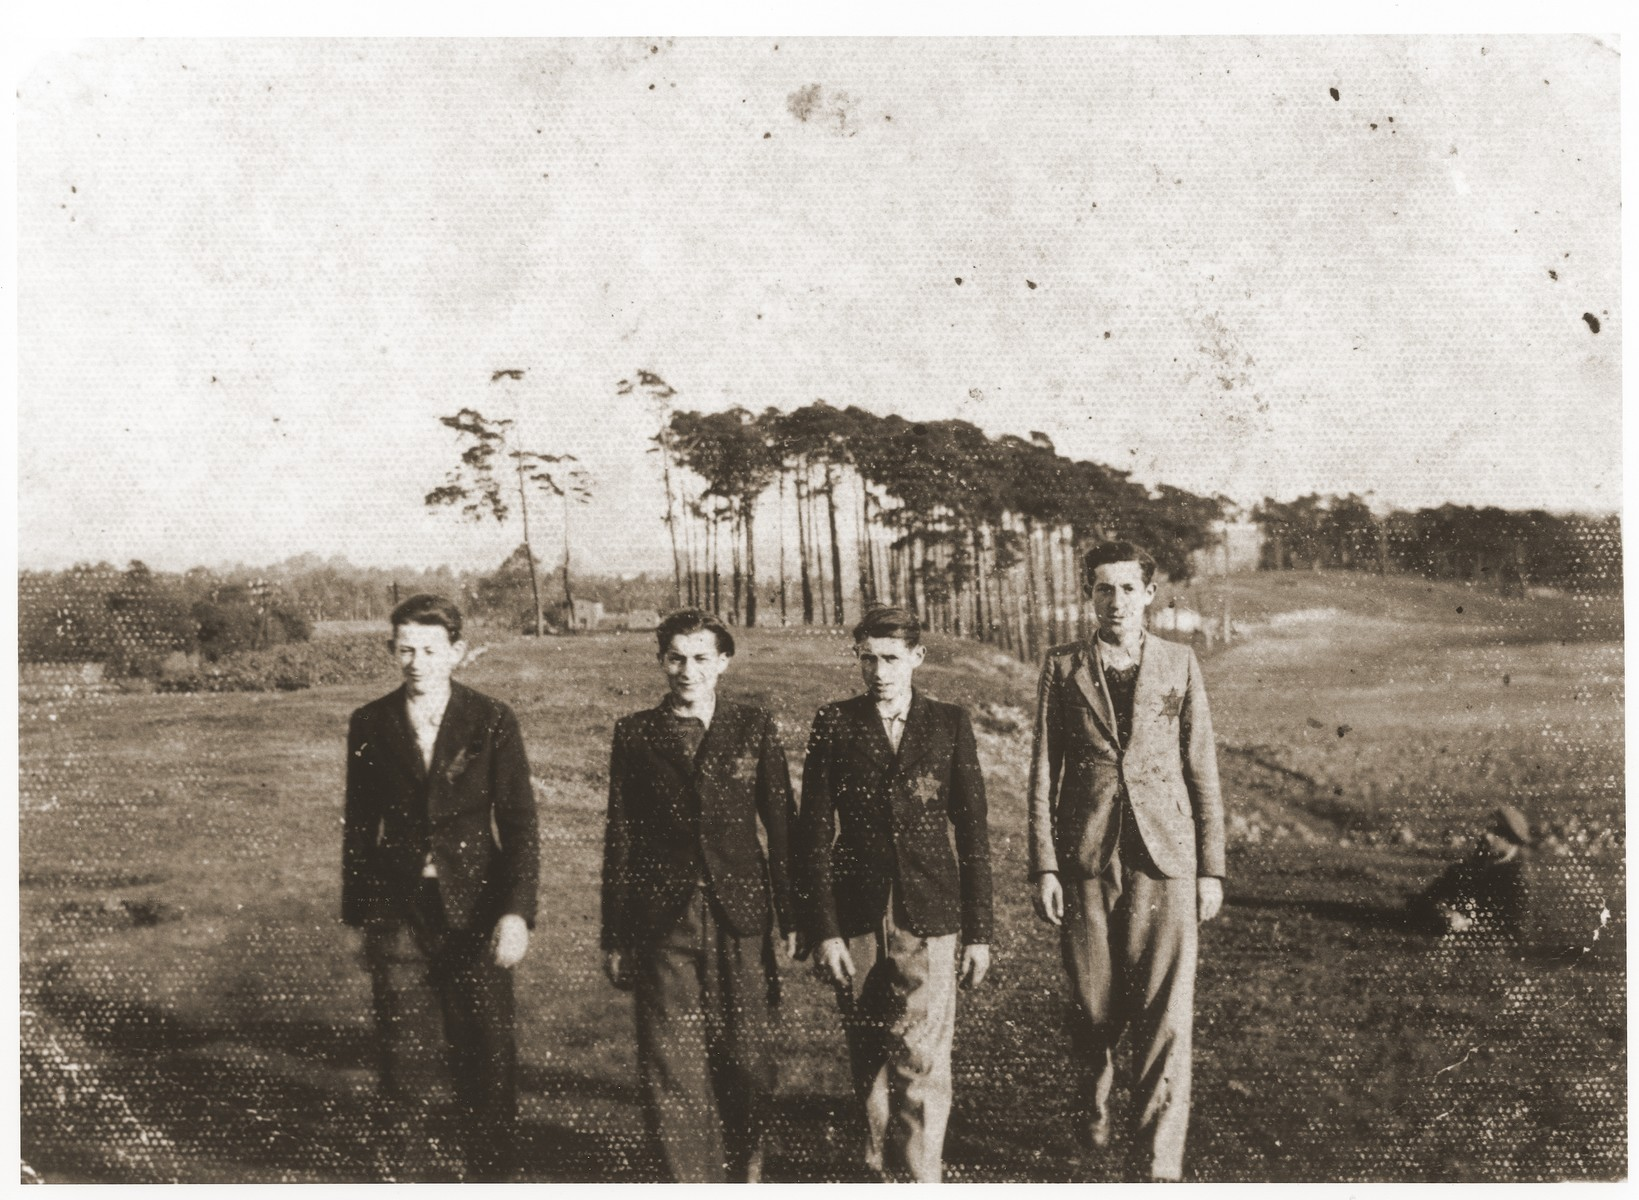 Four young Jewish men wearing yellow stars walk in an open field in the Strzemieszyce ghetto.  Pictured from left to right are: Szmil Kohn, David Bajtner, Dawid Moszkowsi and Aron Kohan.